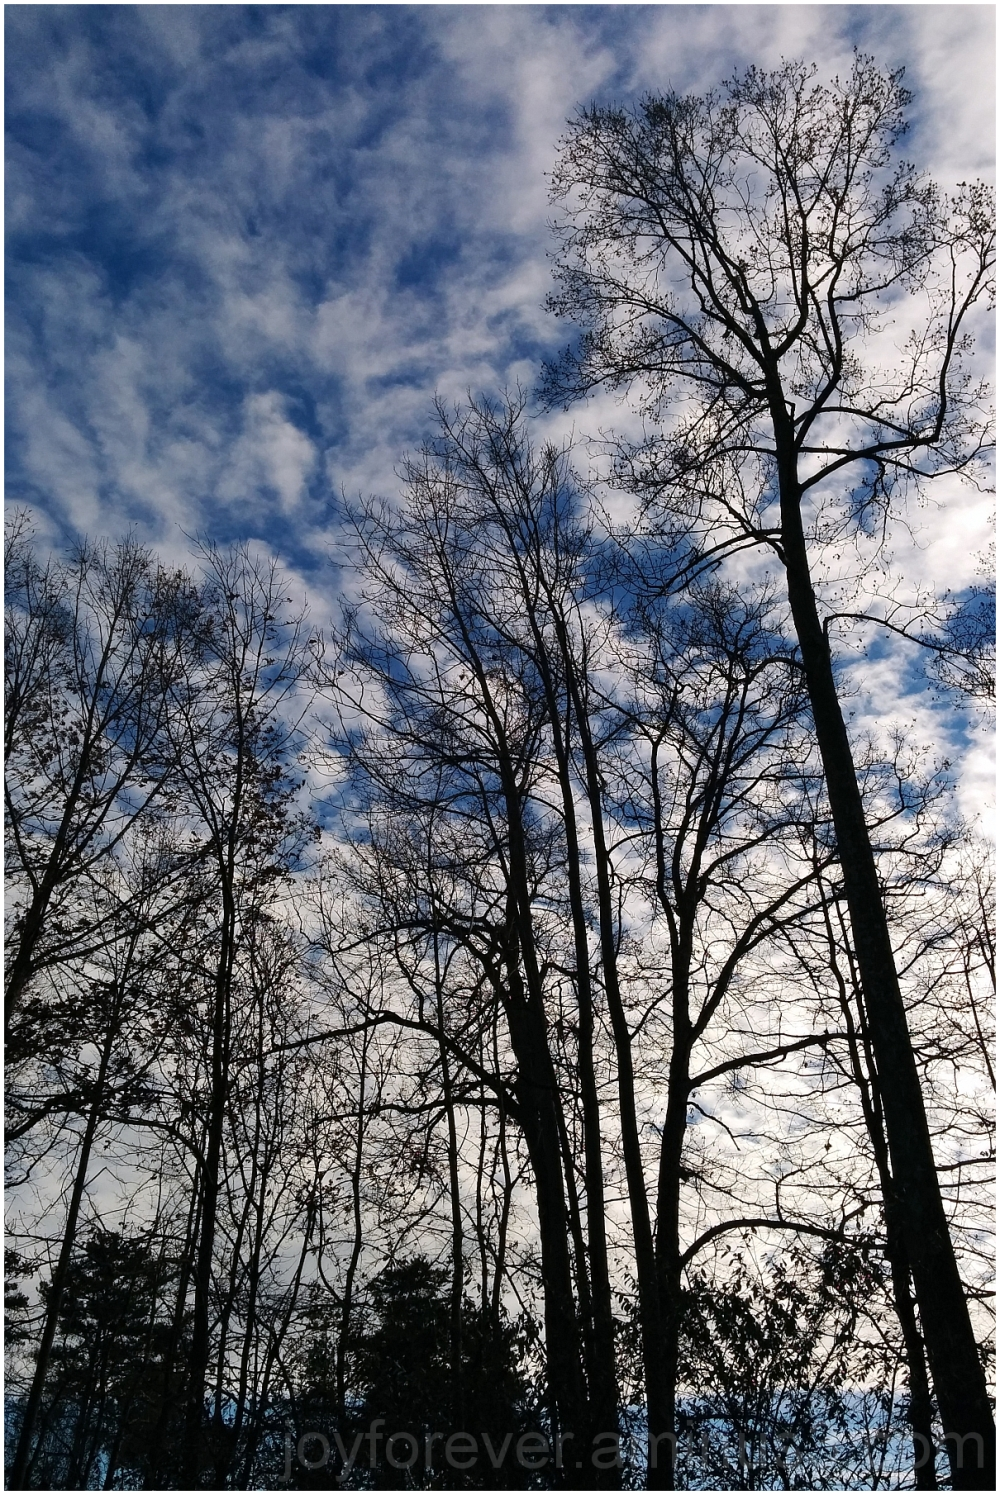 sky trees cloud fall winter